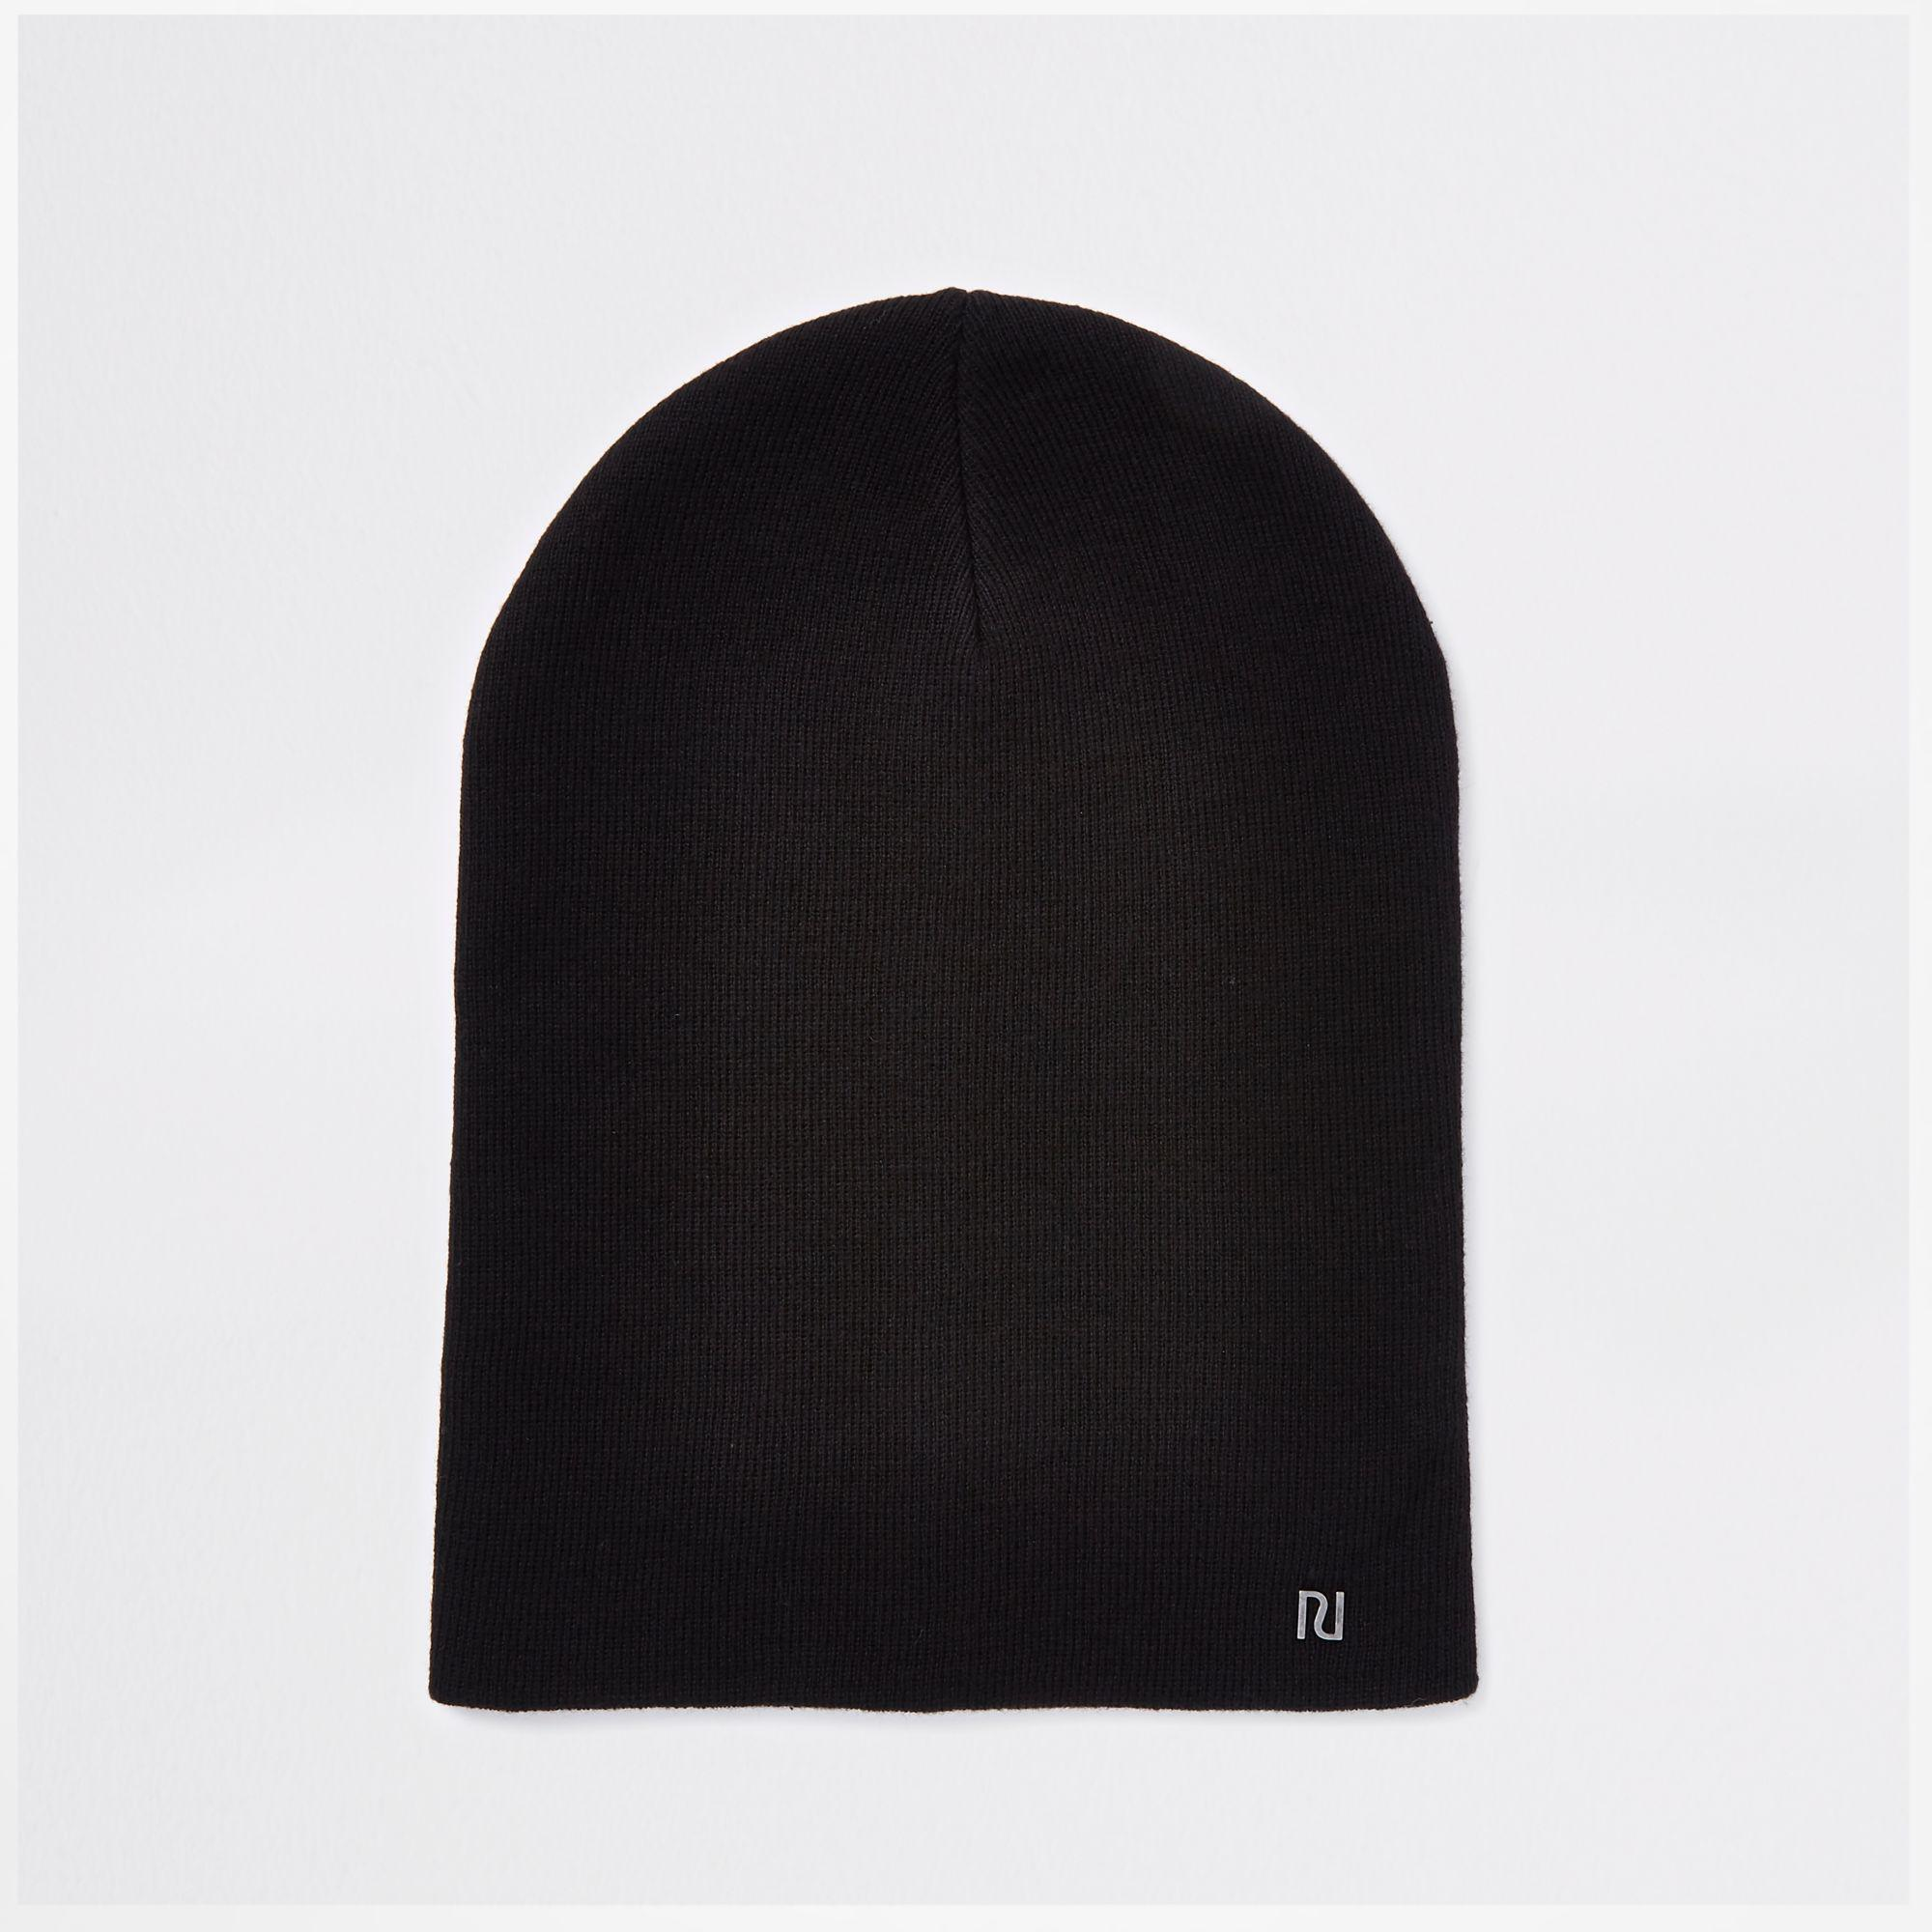 aa9a41542cd River Island Slouch Beanie Ri Hat in Black for Men - Lyst